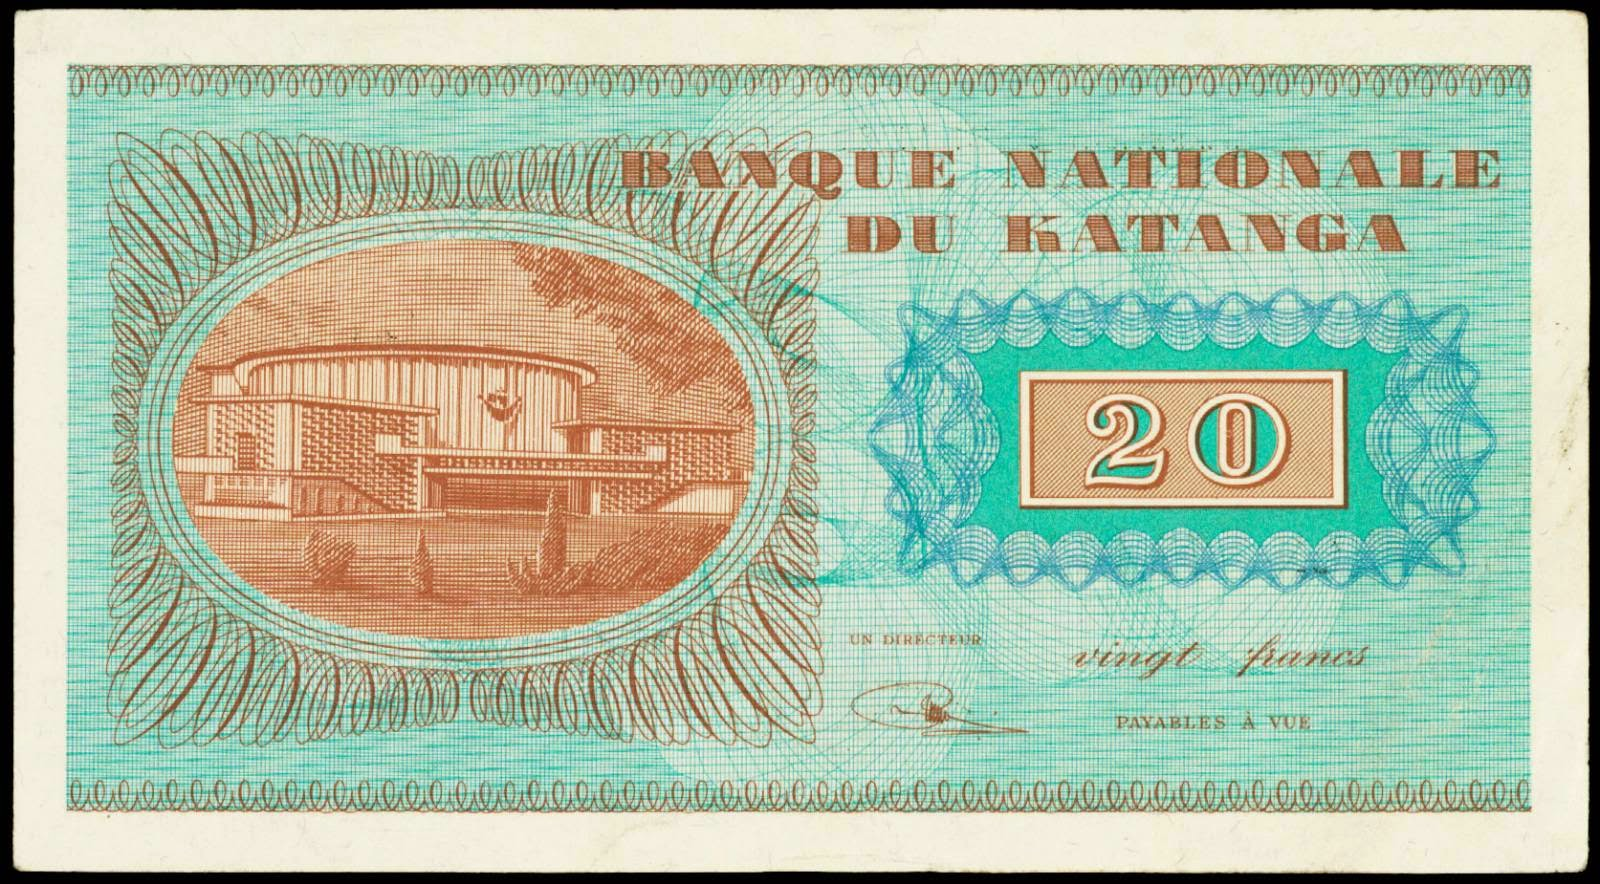 Katanga paper money 20 Francs note 1960